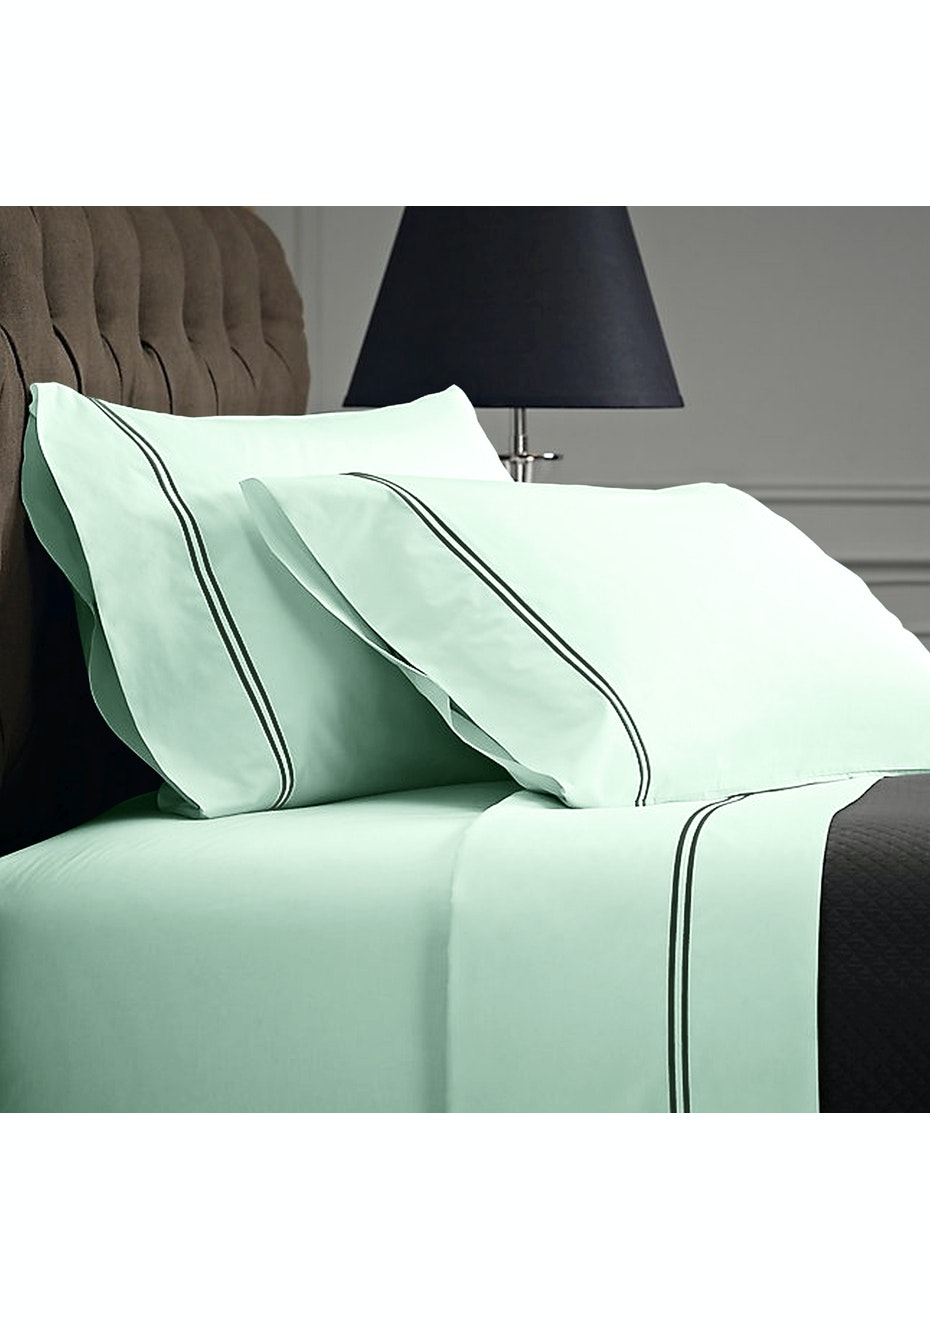 Style & Co 1000 Thread count Egyptian Cotton Hotel Collection Sorrento Sheet sets Double Mist